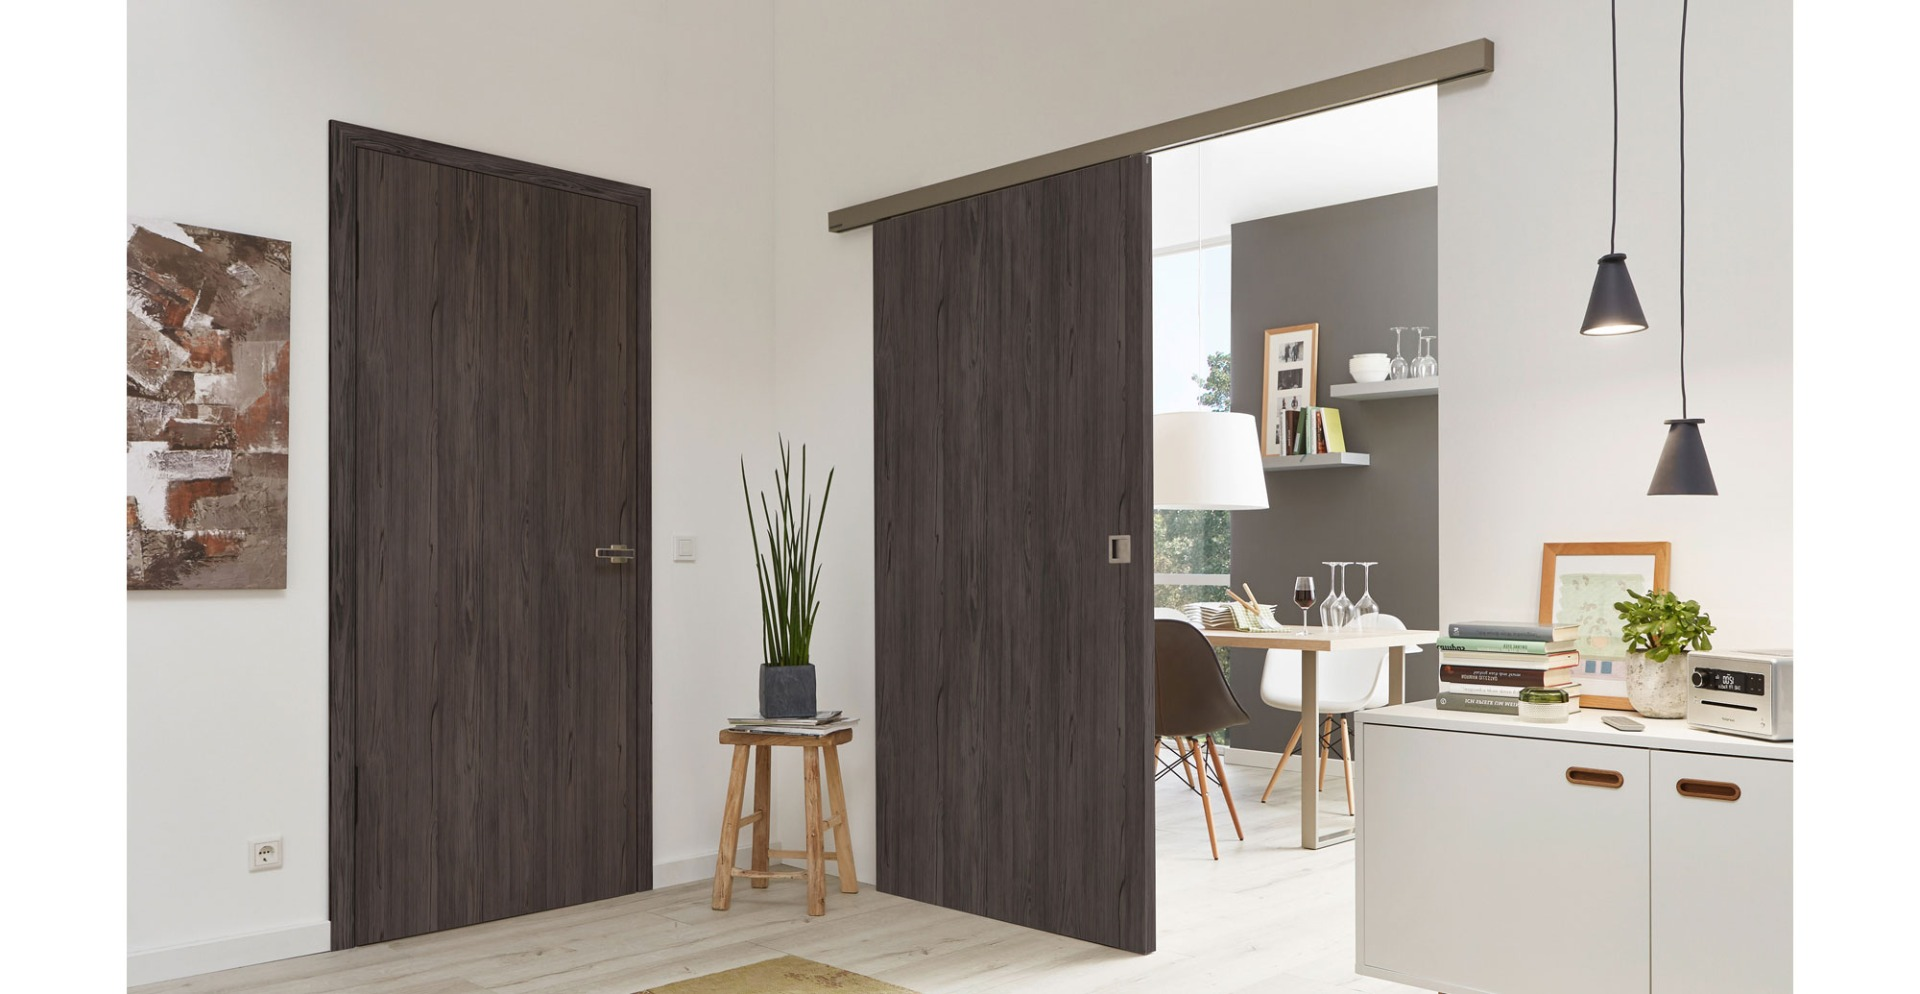 Wenge Laminate Doors - Dark Wood Doors